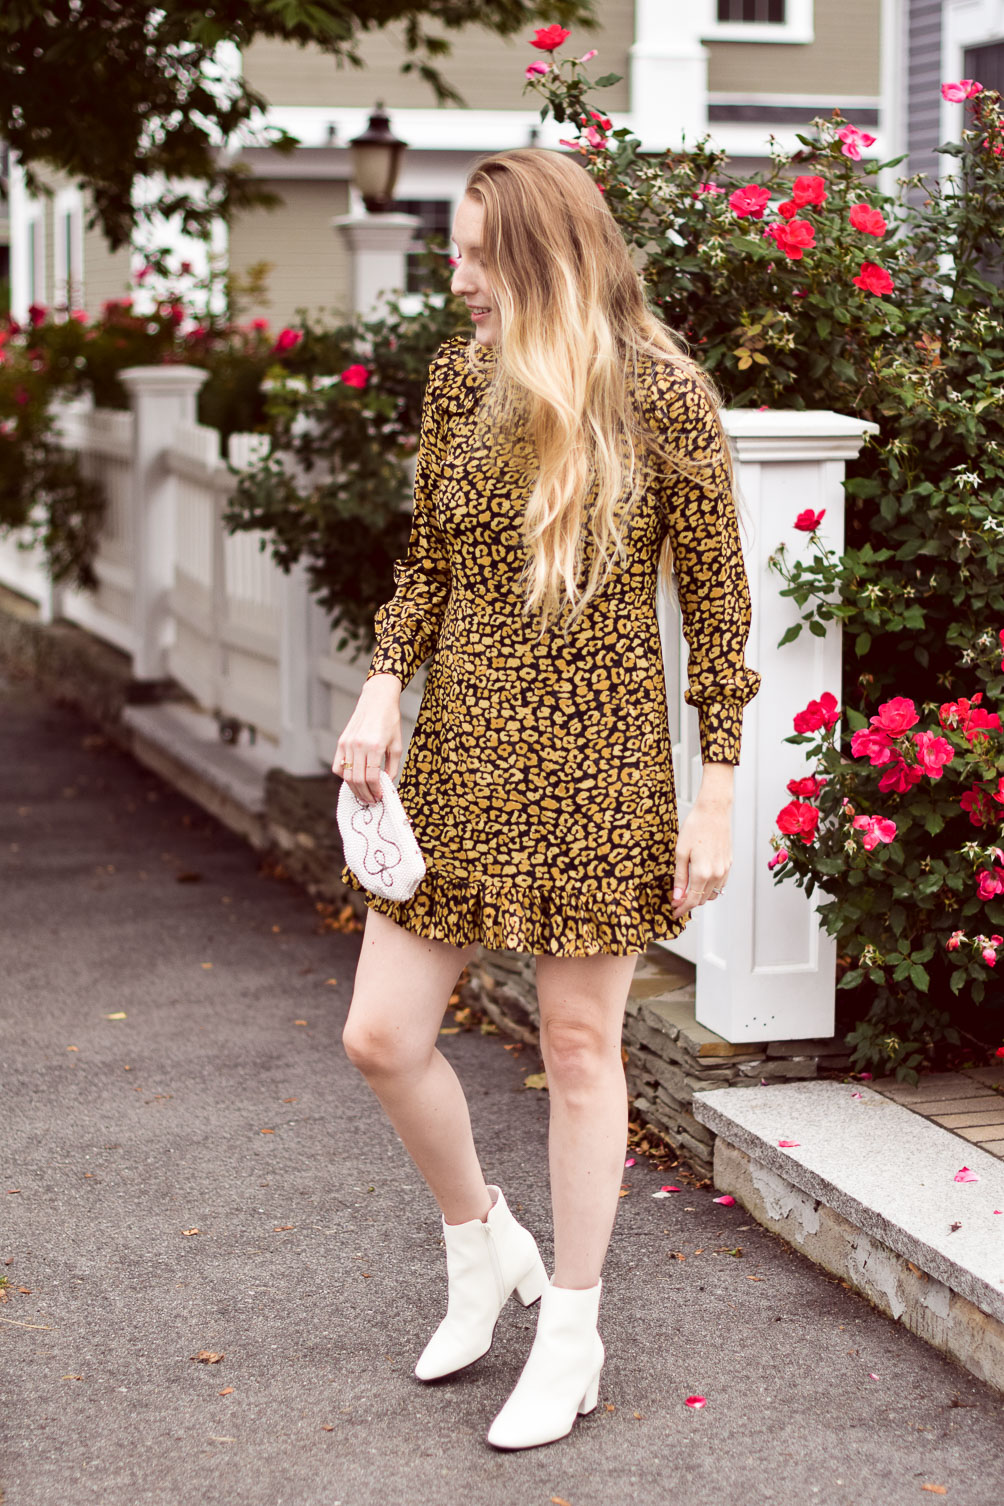 styling a cute fall outfit with this leopard print mini dress and white ankle boots